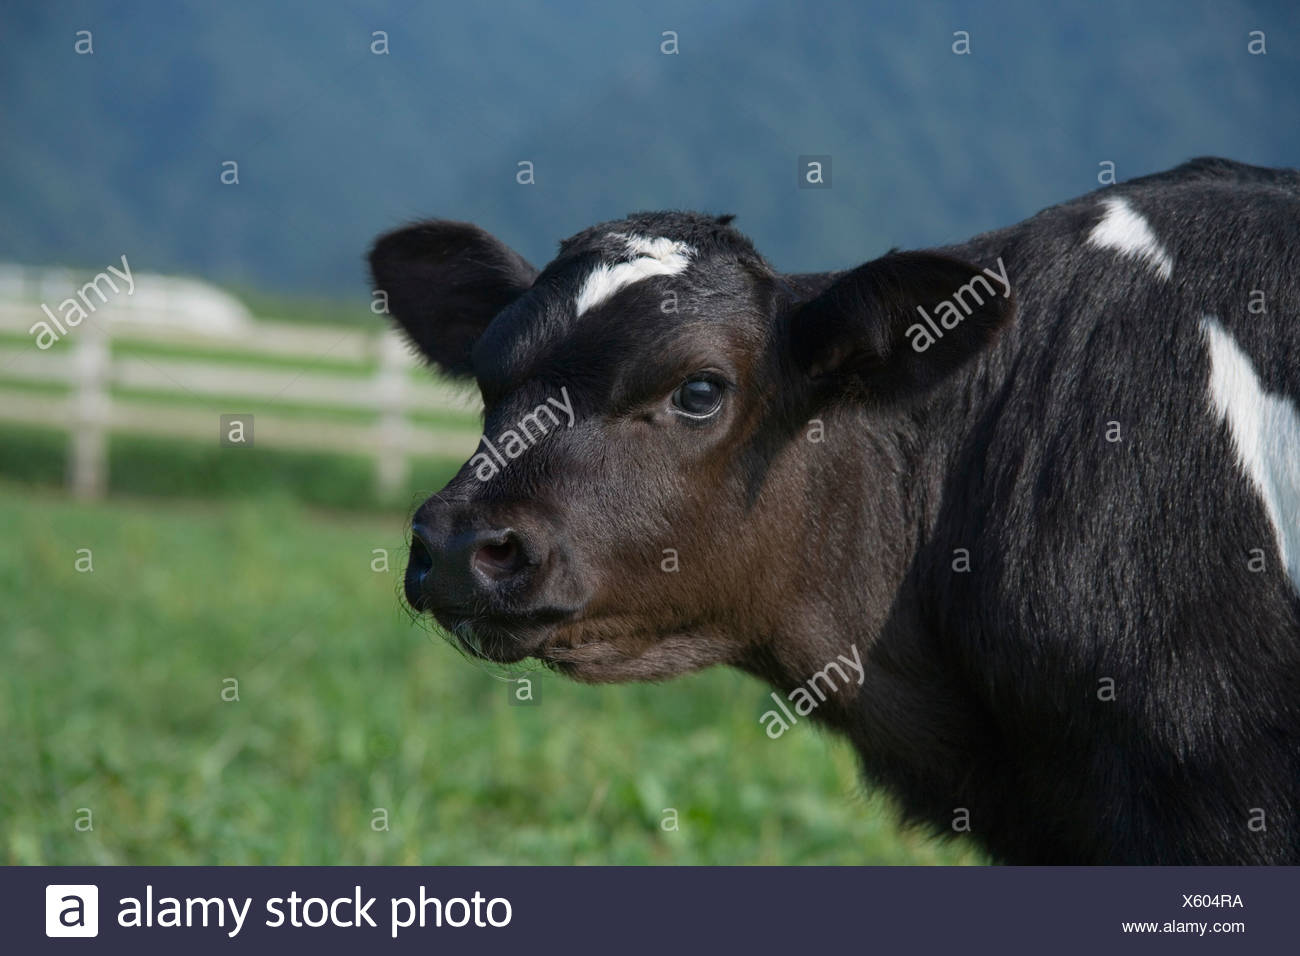 Cow standing in farm Photo Stock